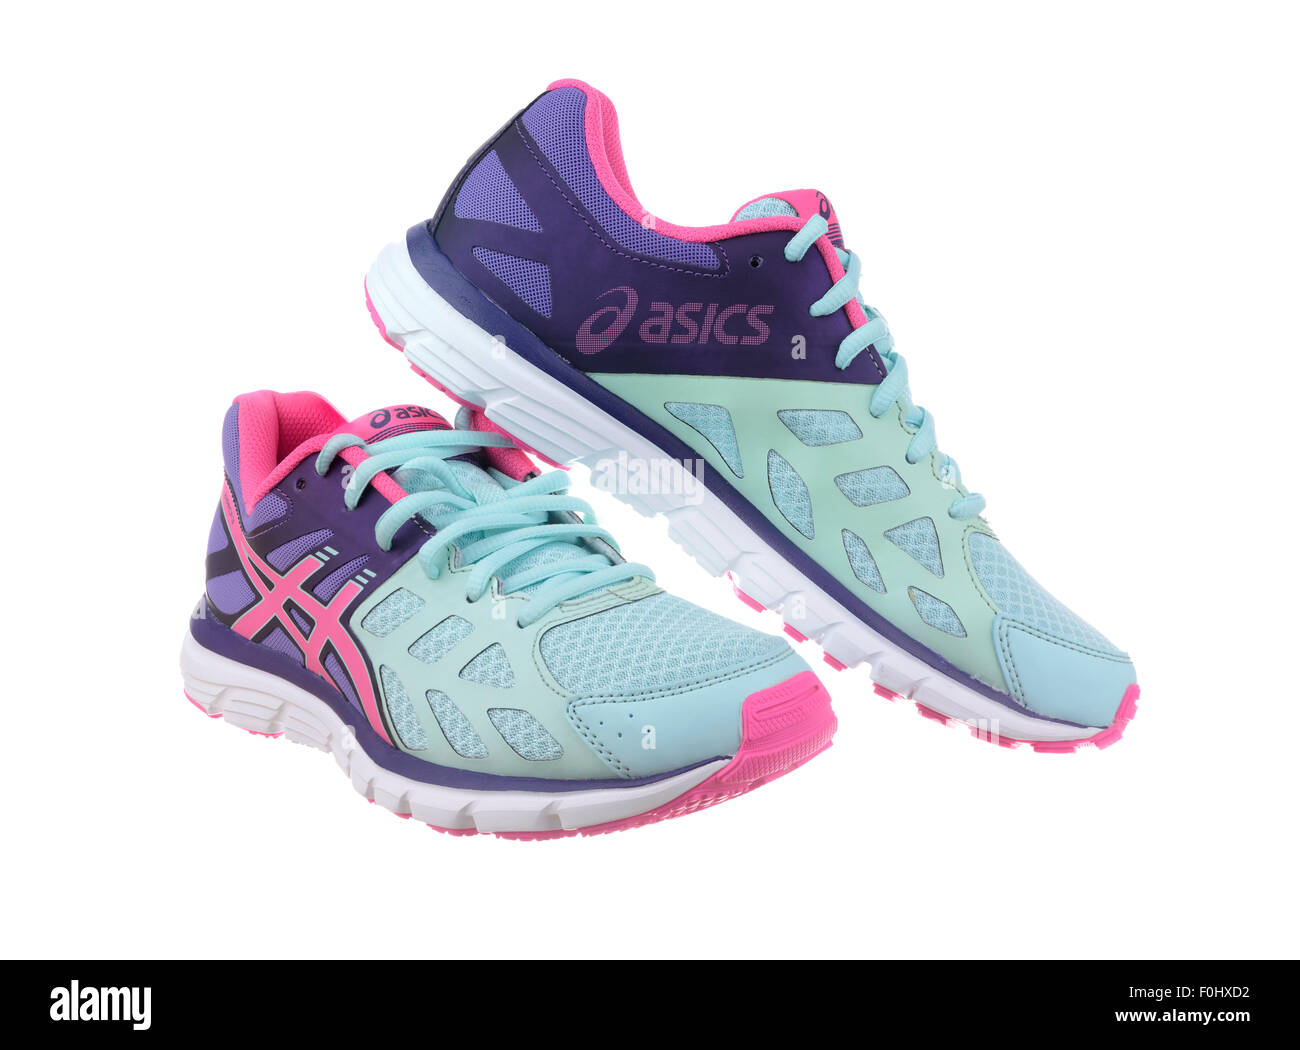 nike free run trainers blue\/pink background